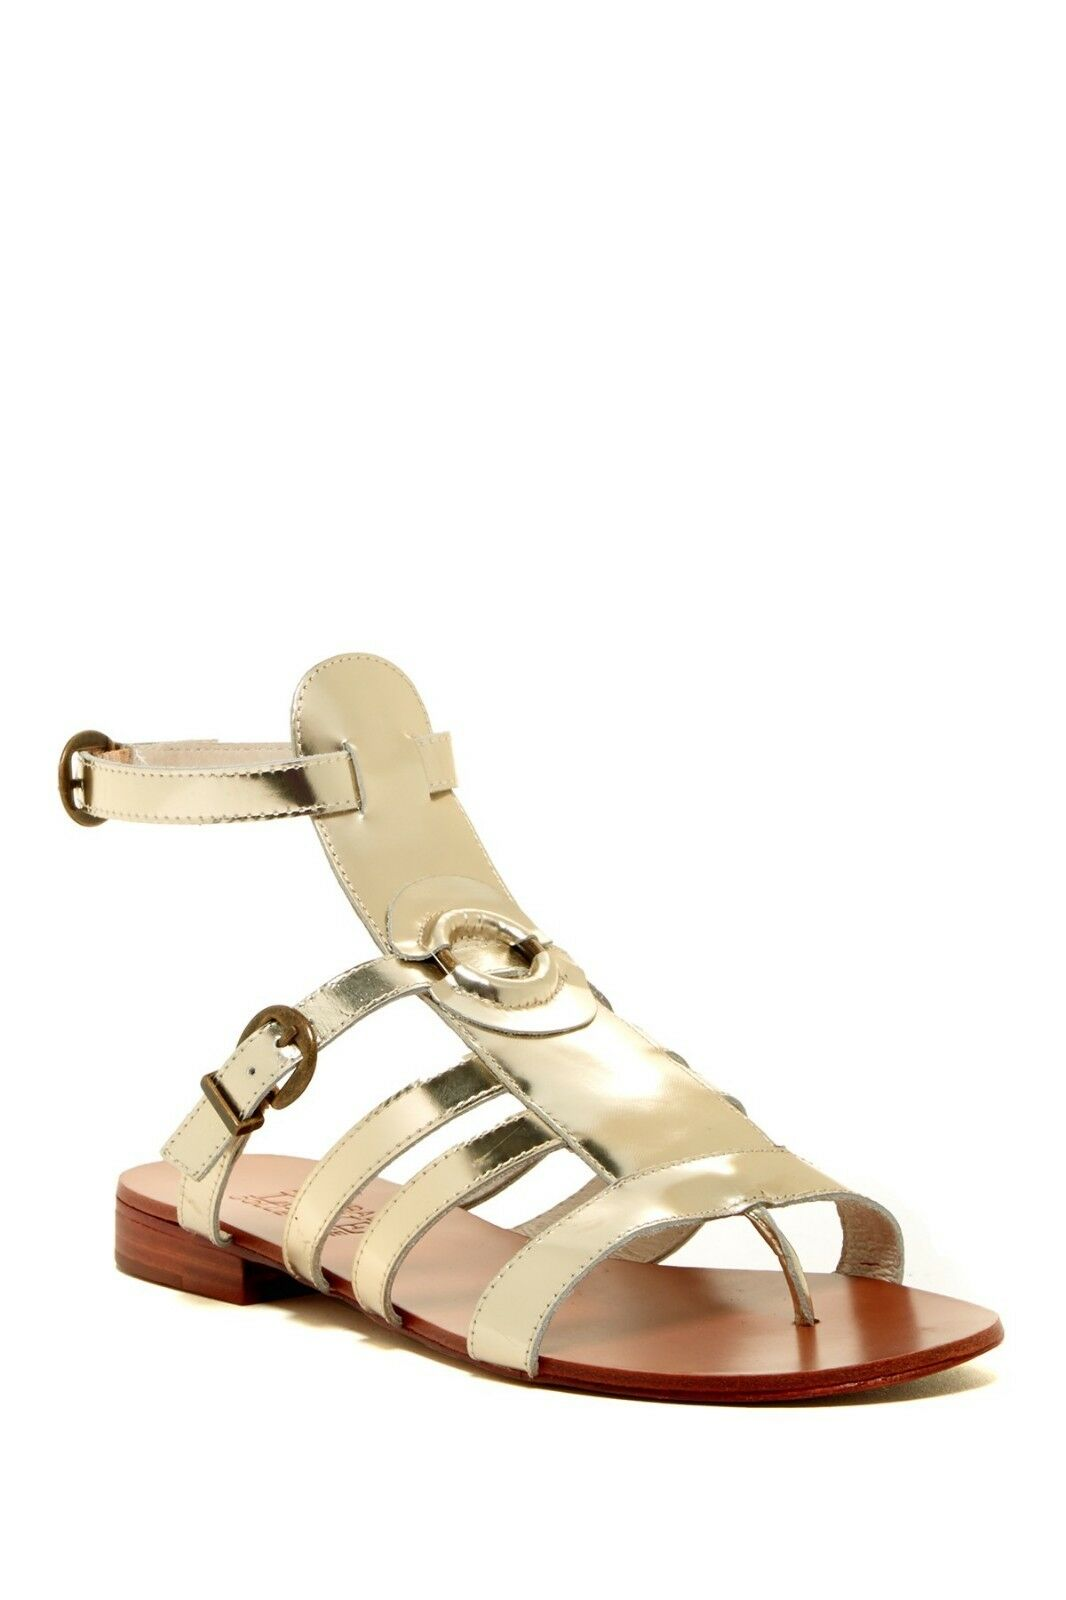 New Australia Luxe Collective Women's Palm Gladiator Sandals sz  US 6